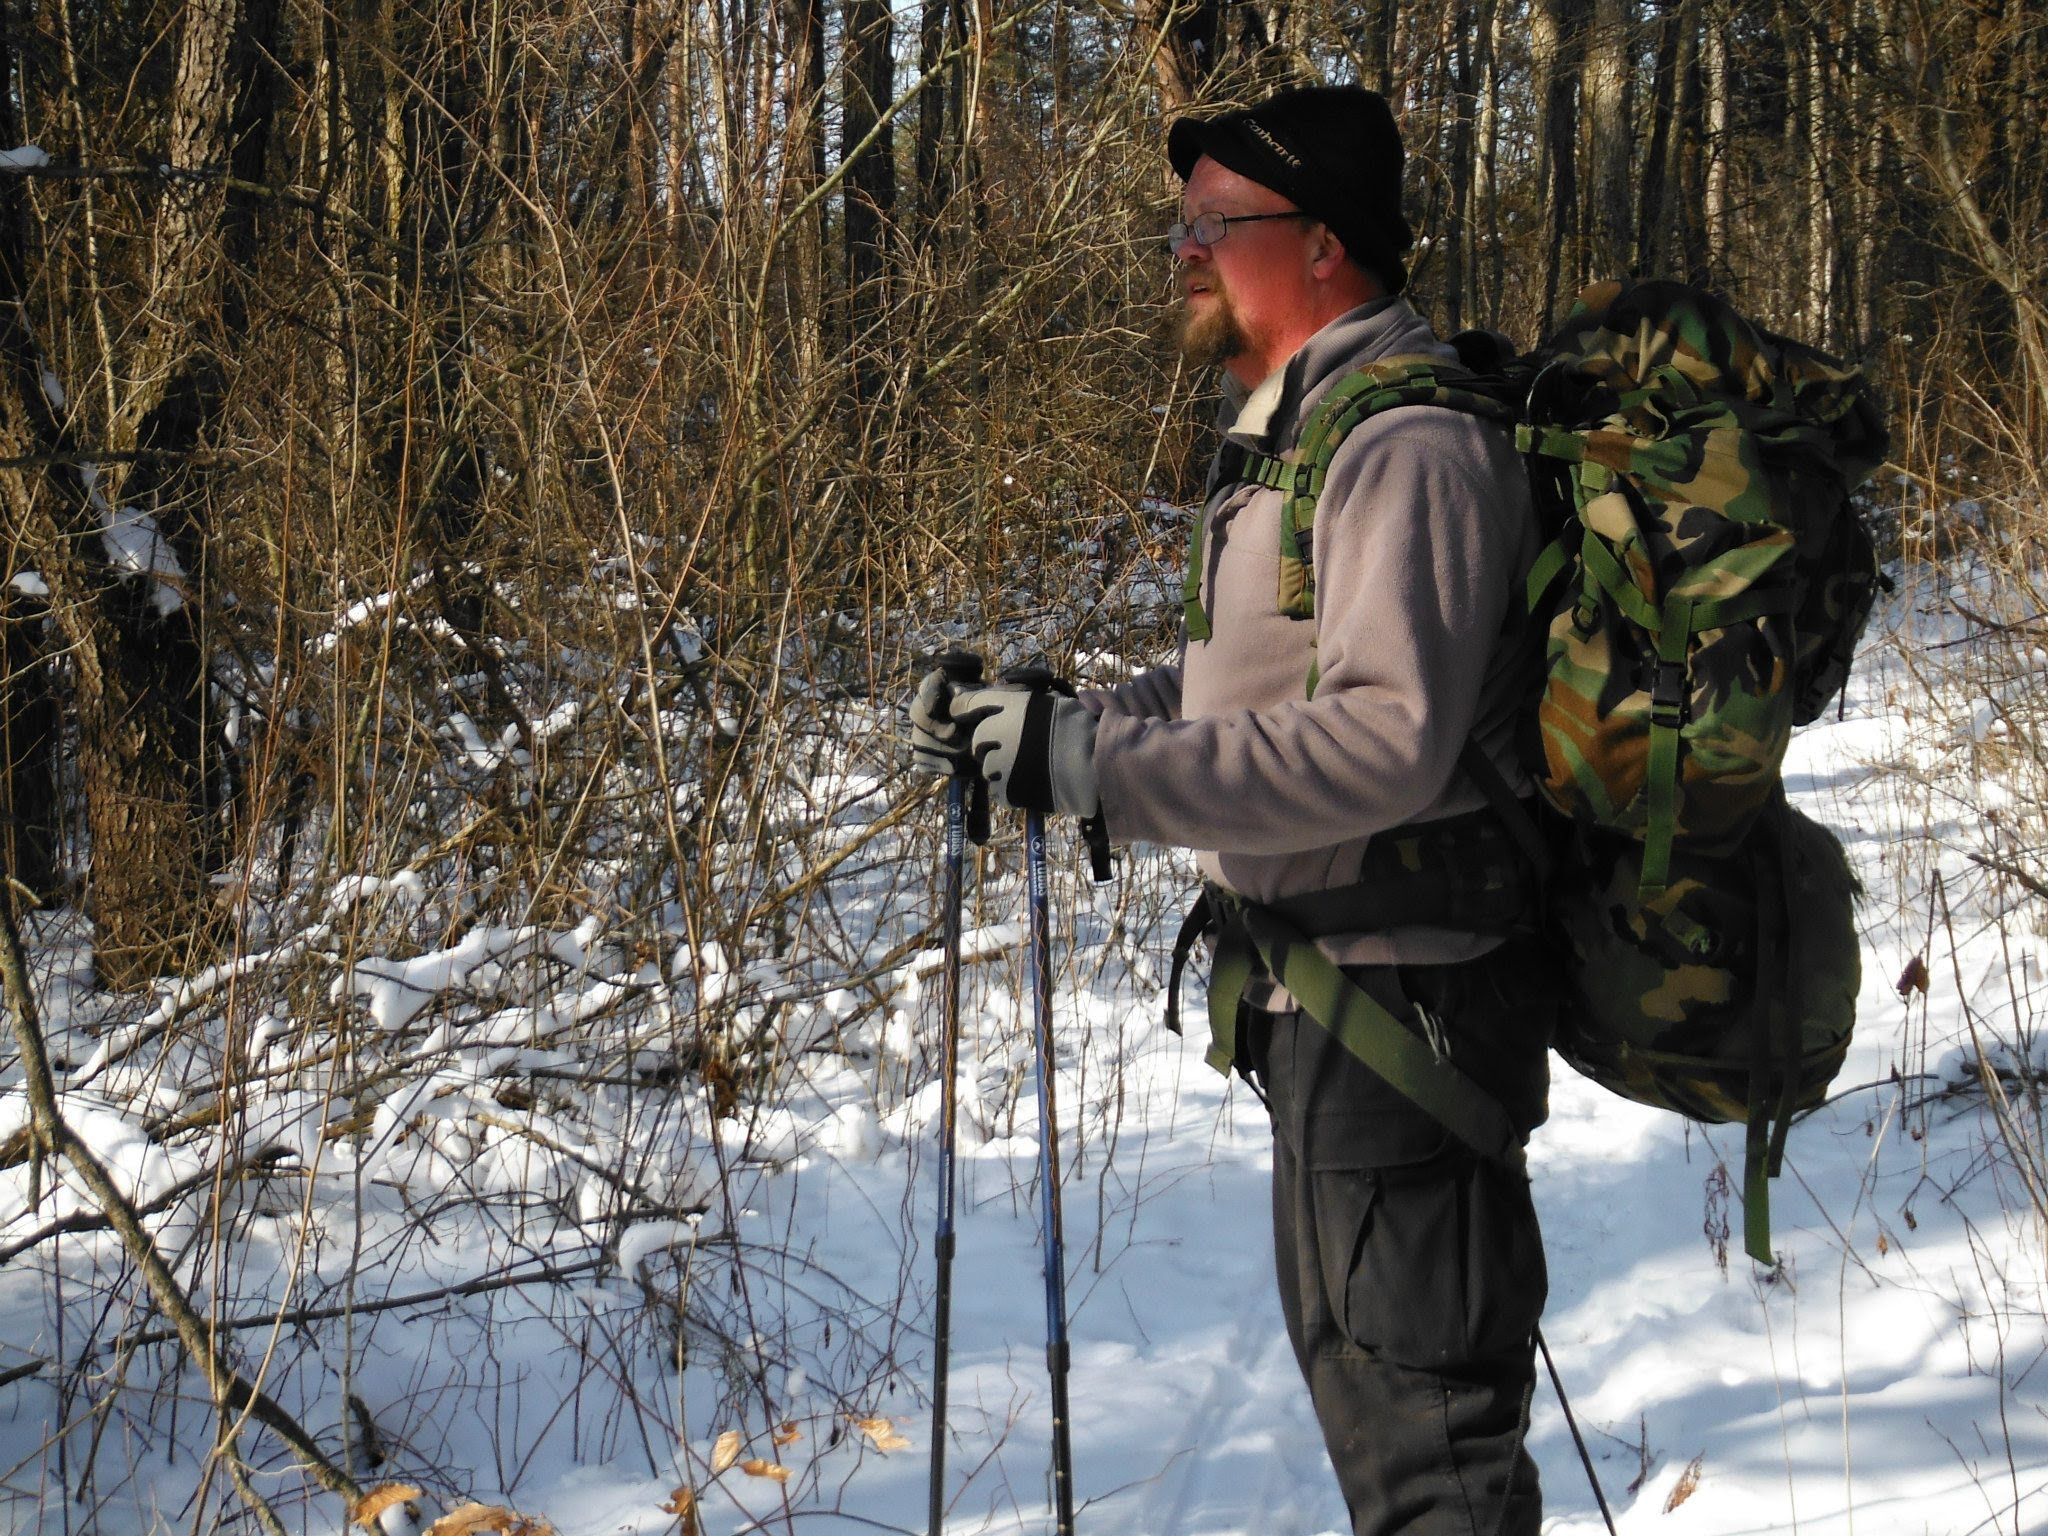 hiking-prepper-woods